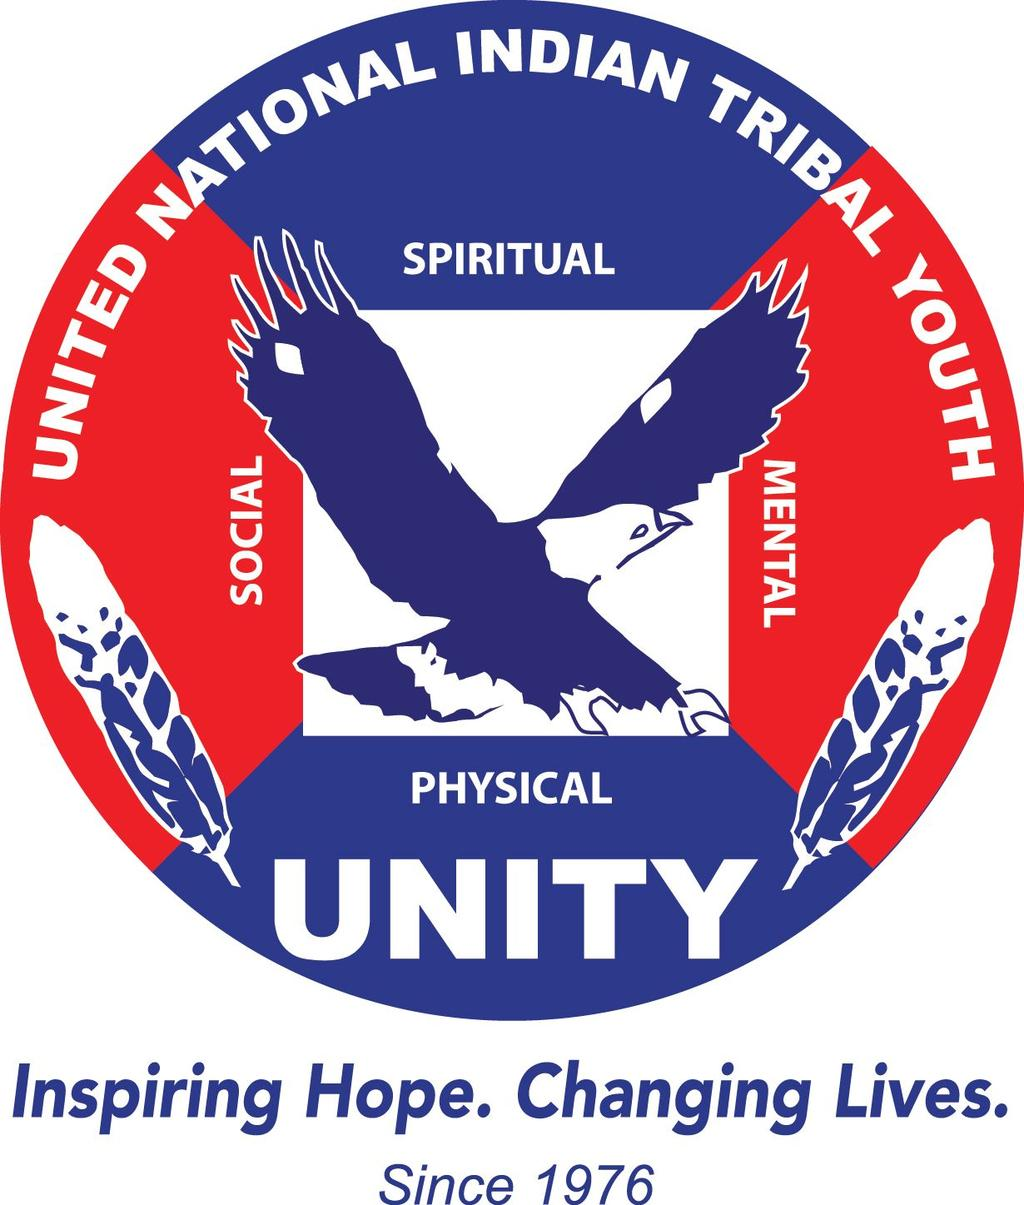 DRAFT AGENDA WELCOME TO THE 2018 NATIONAL UNITY CONFERENCE LIKE & Follow United National Indian Tribal Youth s Facebook & Instagram Page for Conference Updates!